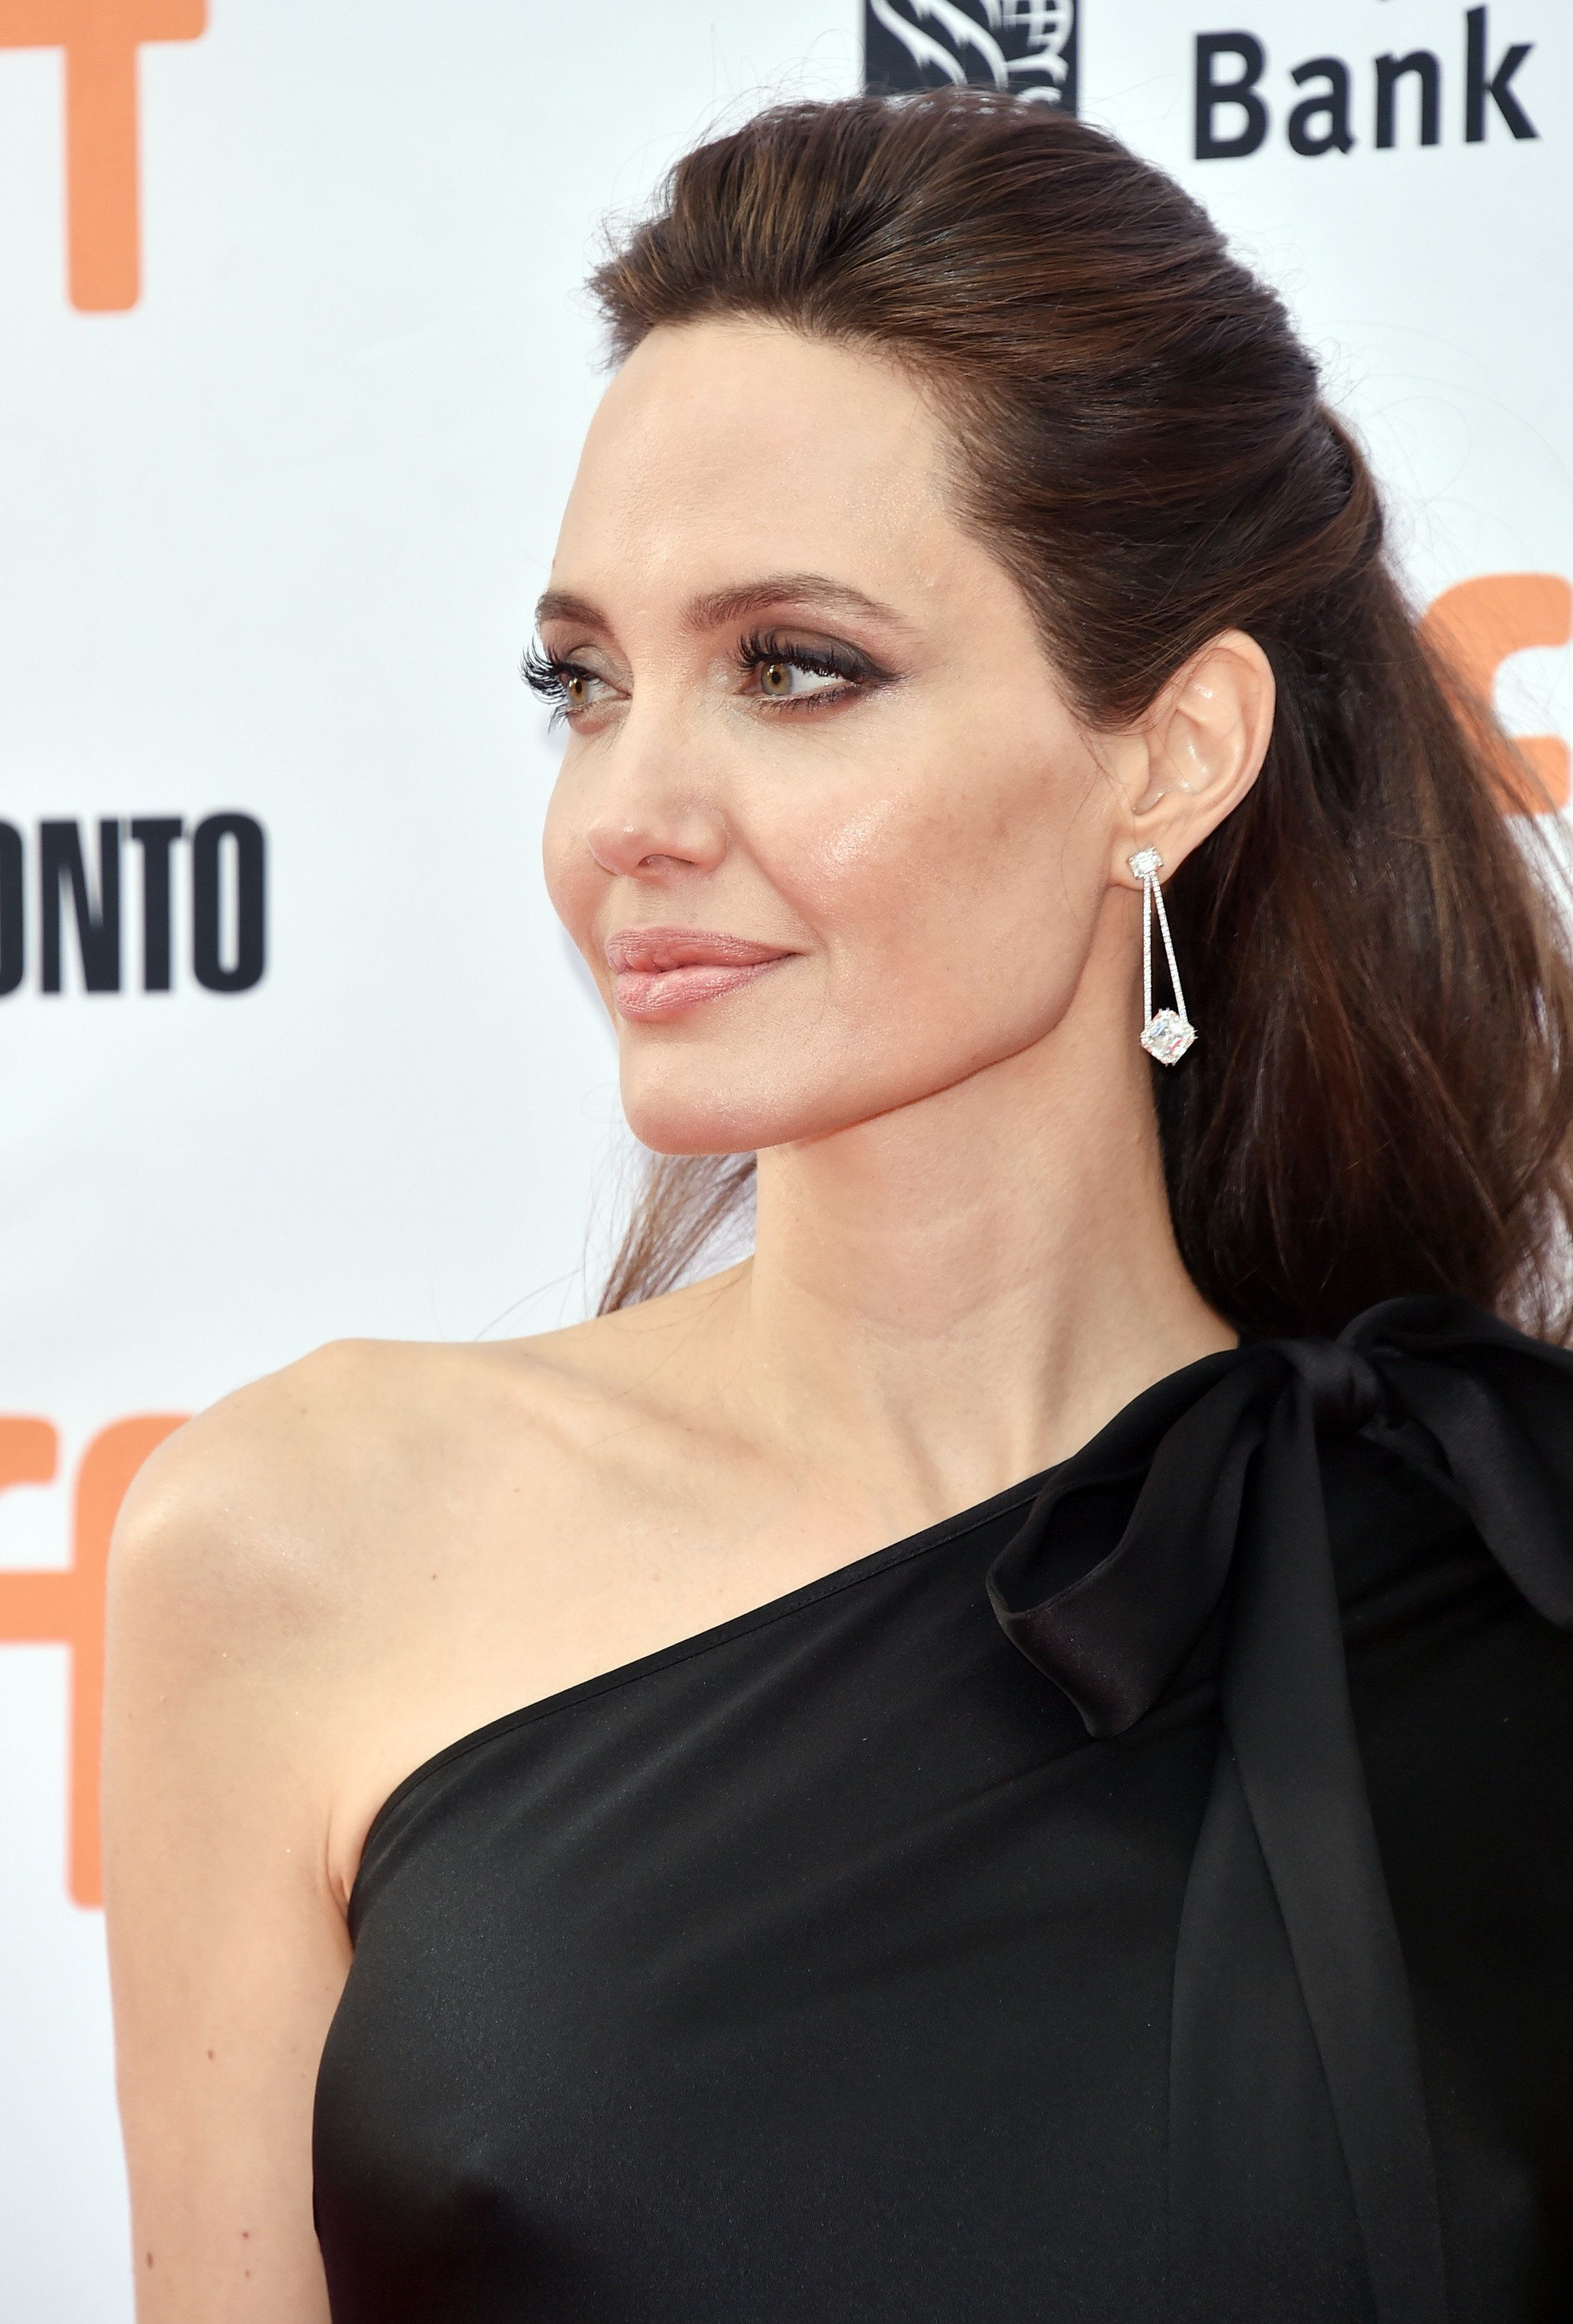 Angelina Jolie Is Ready To Move On After 'Very Painful' Year Without Brad